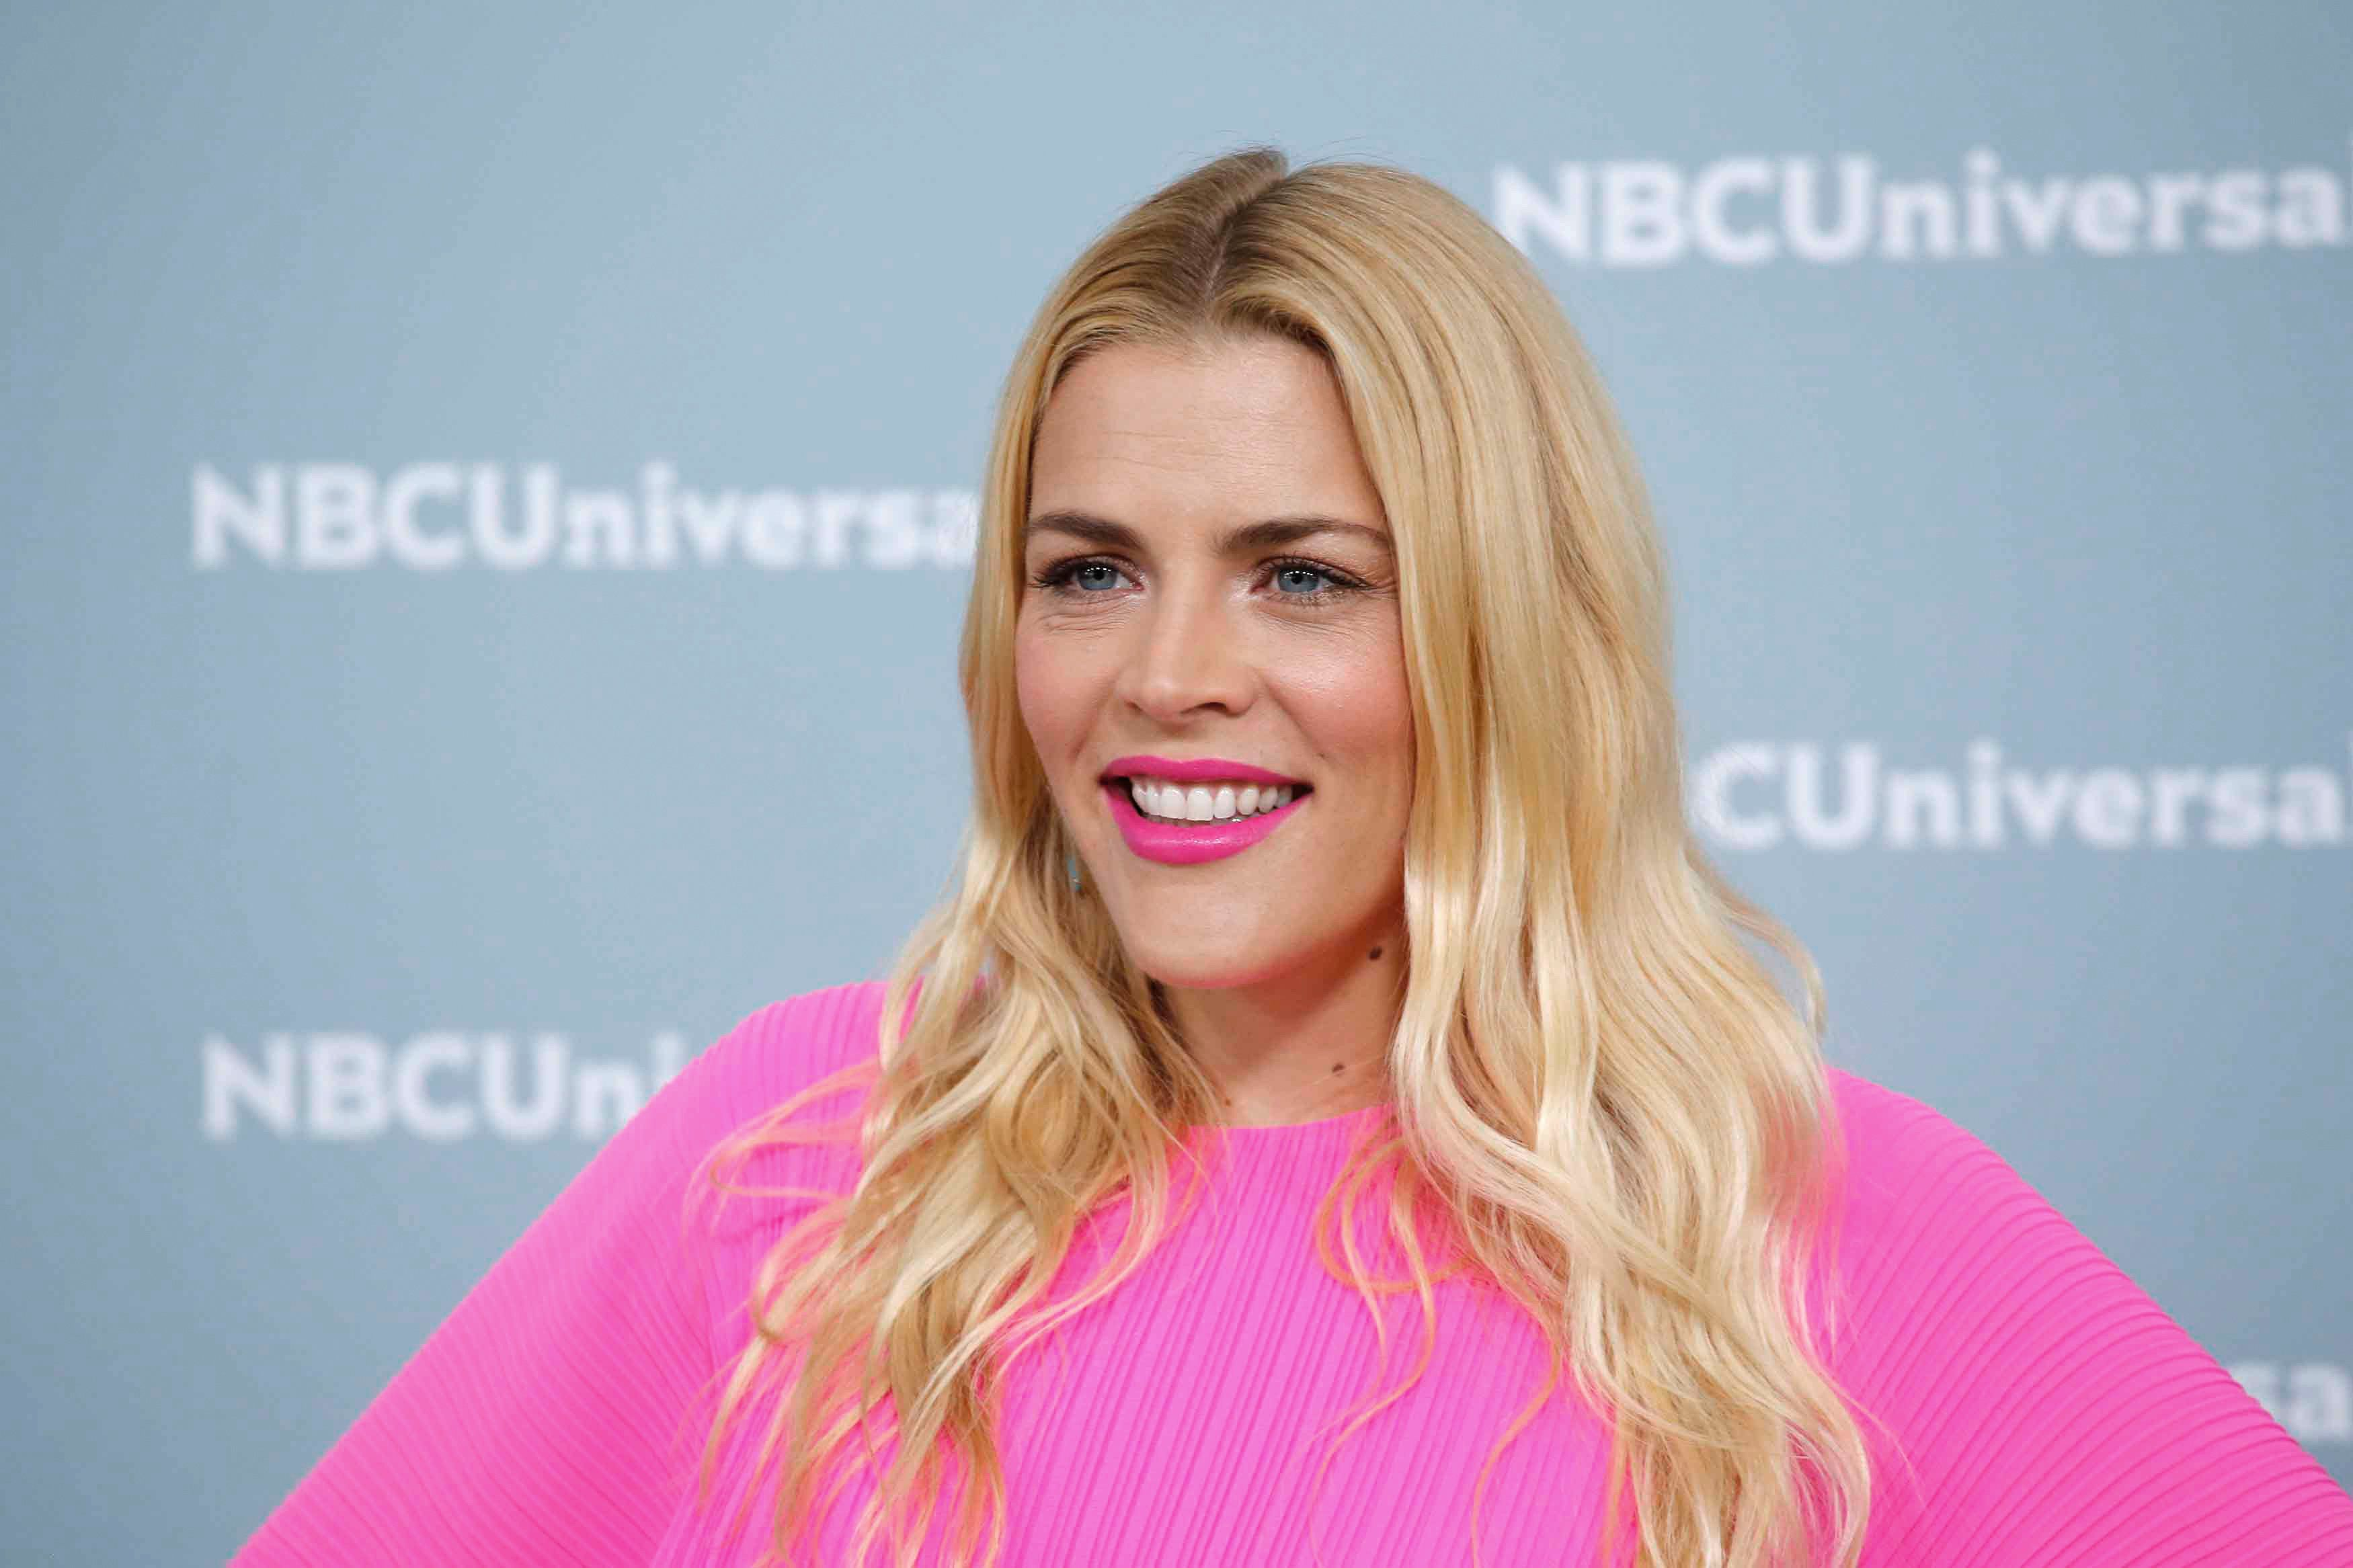 Actress Busy Philipps attends the Unequaled NBCUniversal Upfront campaign at Radio City Music Hall on May 14, 2018 in New York. (Photo by KENA BETANCUR / AFP)        (Photo credit should read KENA BETANCUR/AFP/Getty Images)